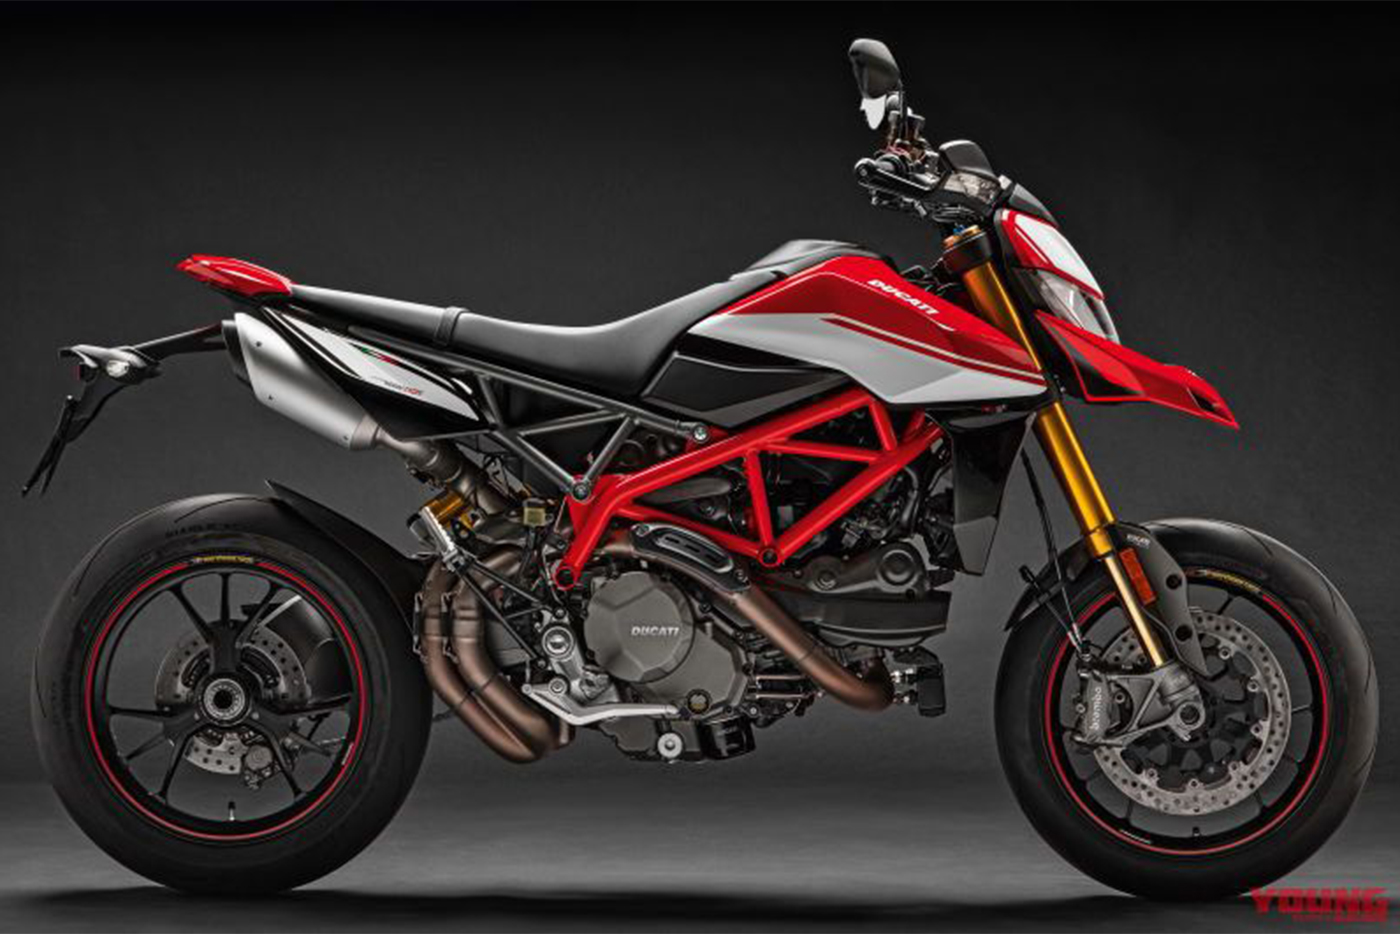 my19-hypermotard-950-sp-uc69964-high-800x531.jpg